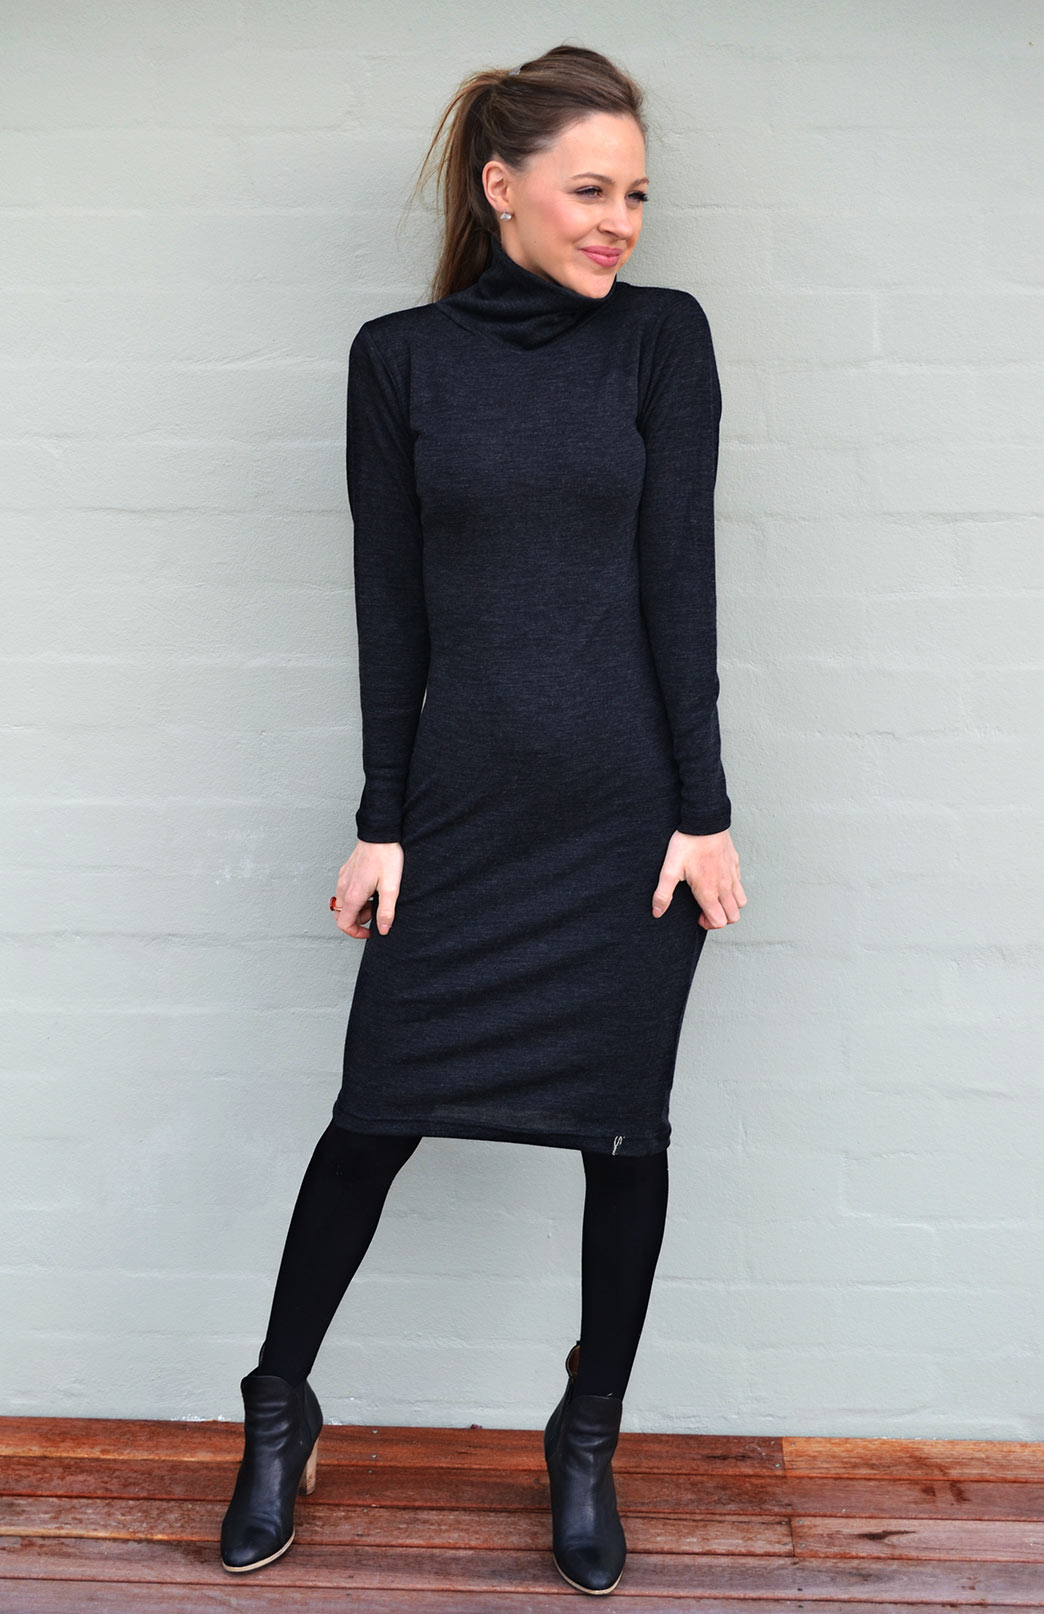 Polo Neck Dress - Women's Merino Wool Long Sleeve Polo Neck Winter Dress - Smitten Merino Tasmania Australia